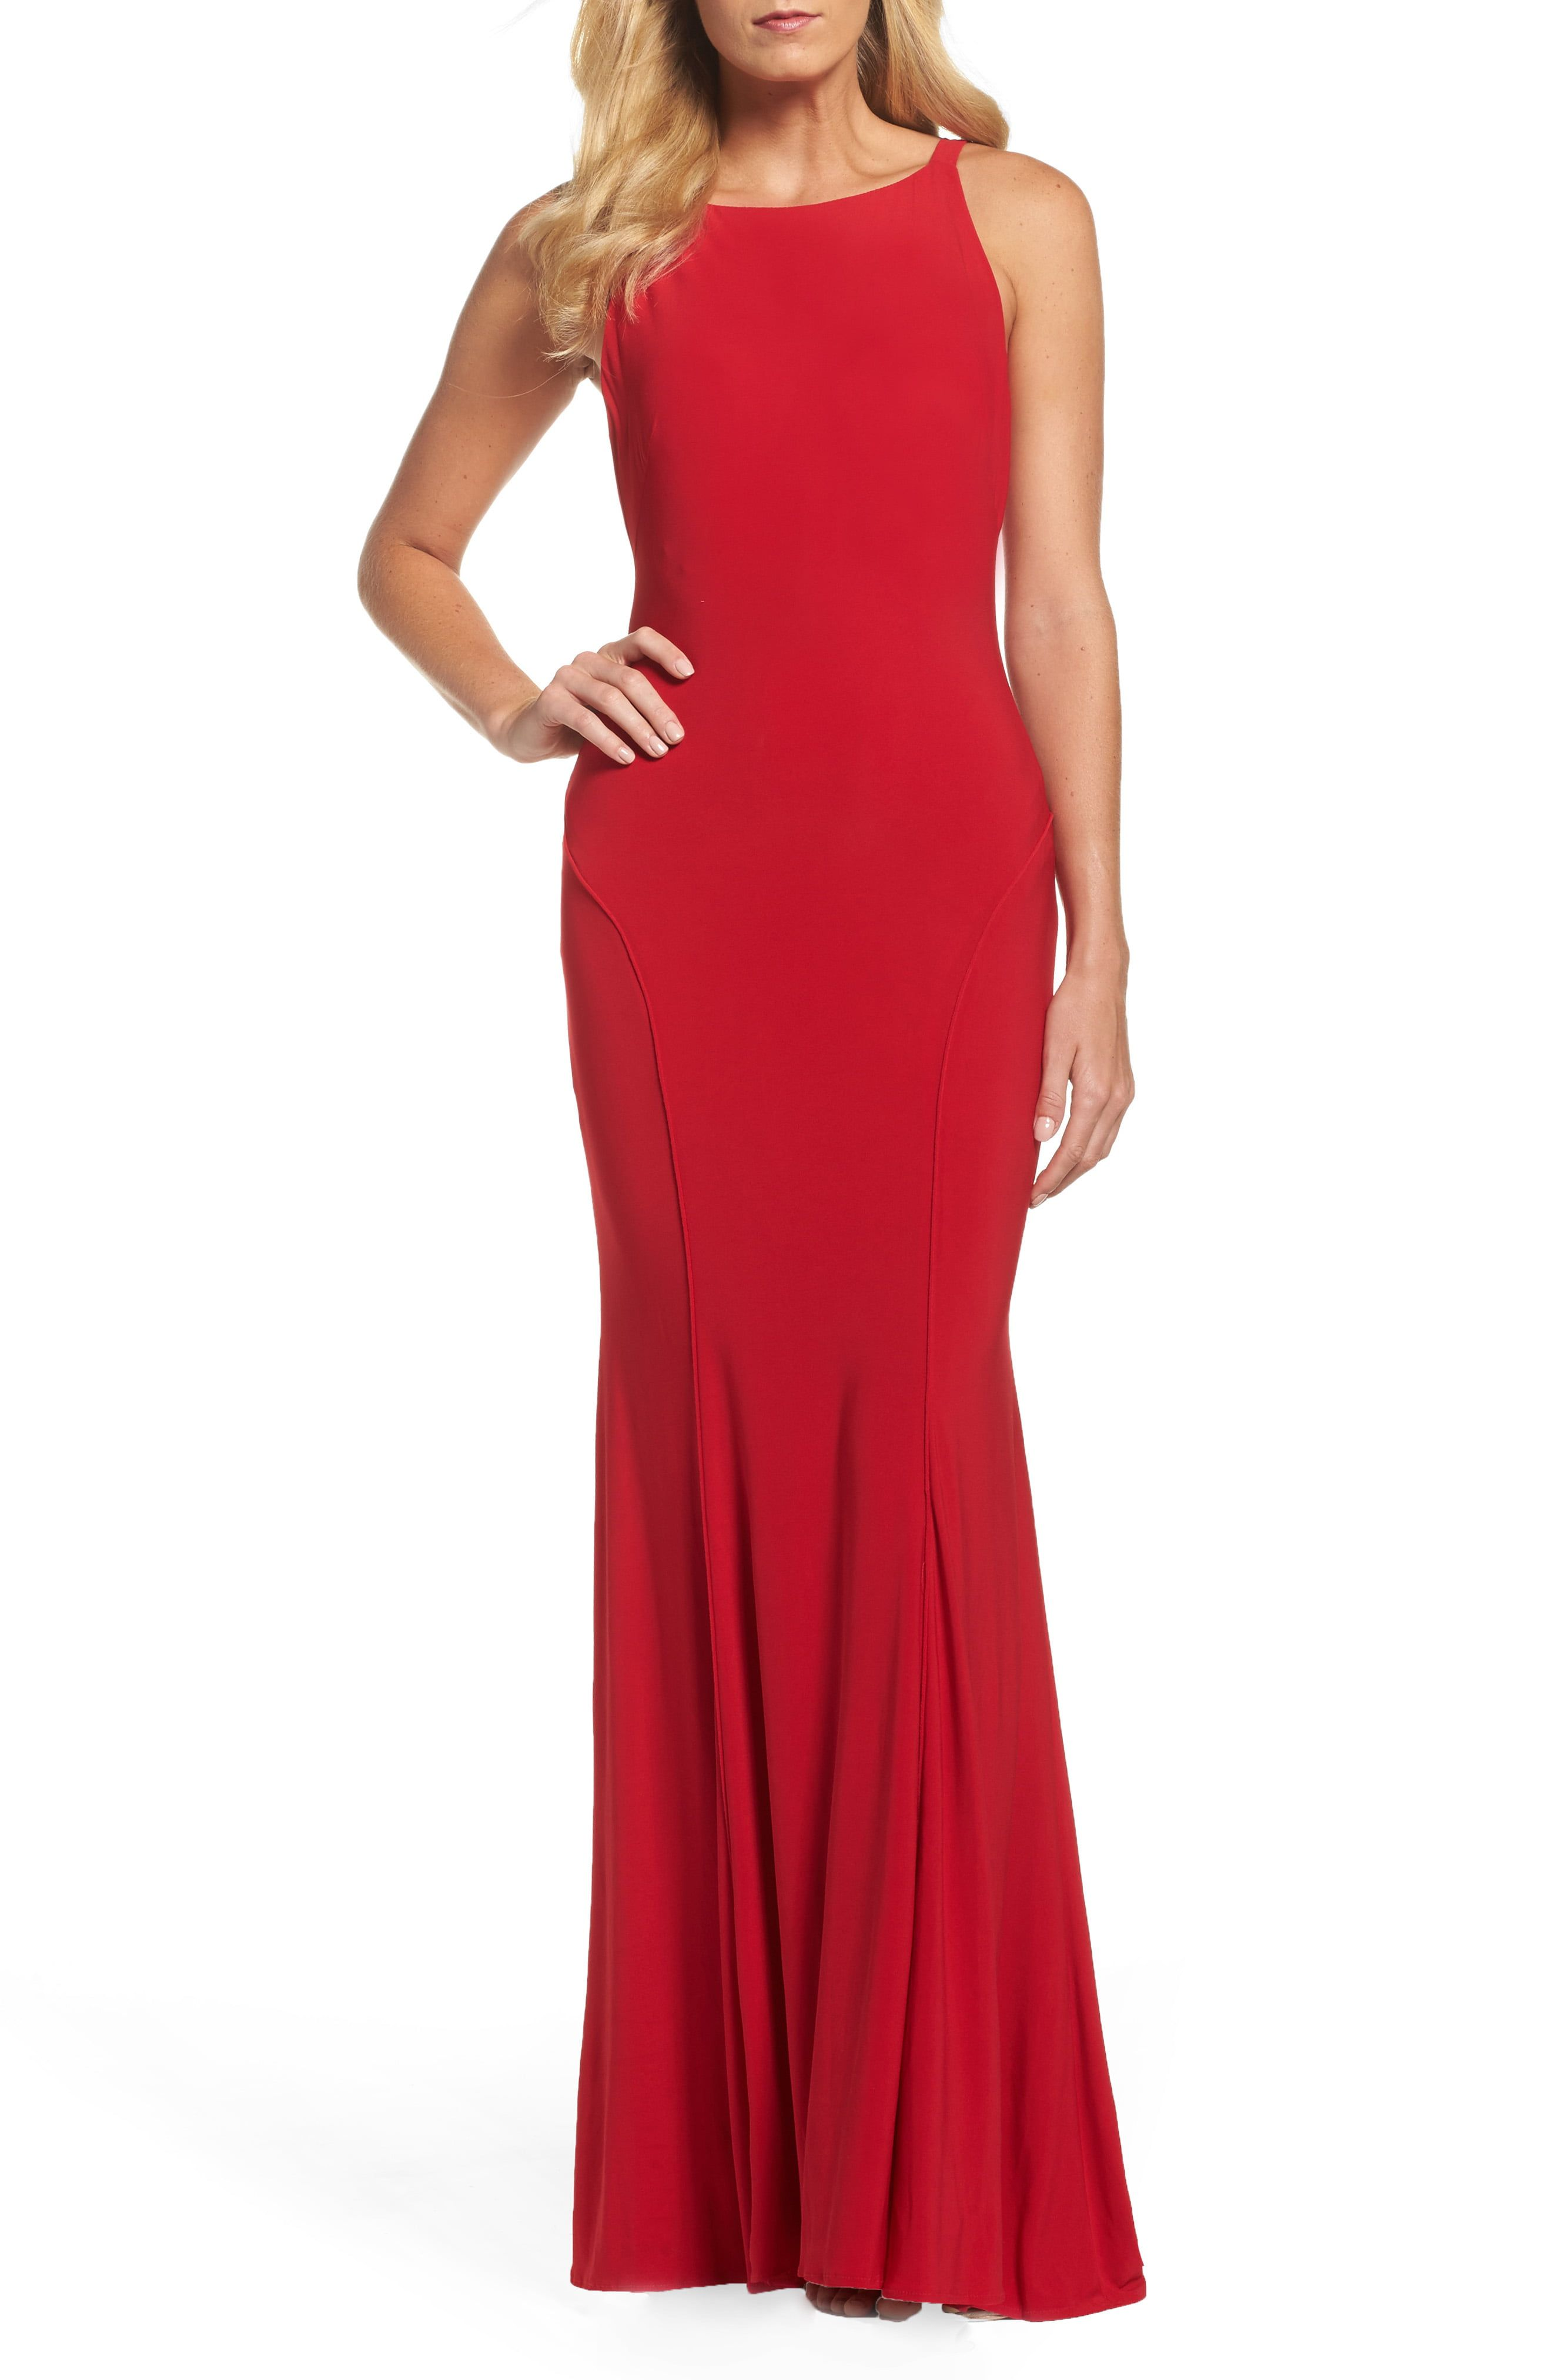 Ieena For Mac Duggal Low Back Sleeveless Trumpet Gown Nordstrom Rack In 2021 Red Dress Maxi Red Evening Dress Red Evening Gowns [ 4048 x 2640 Pixel ]